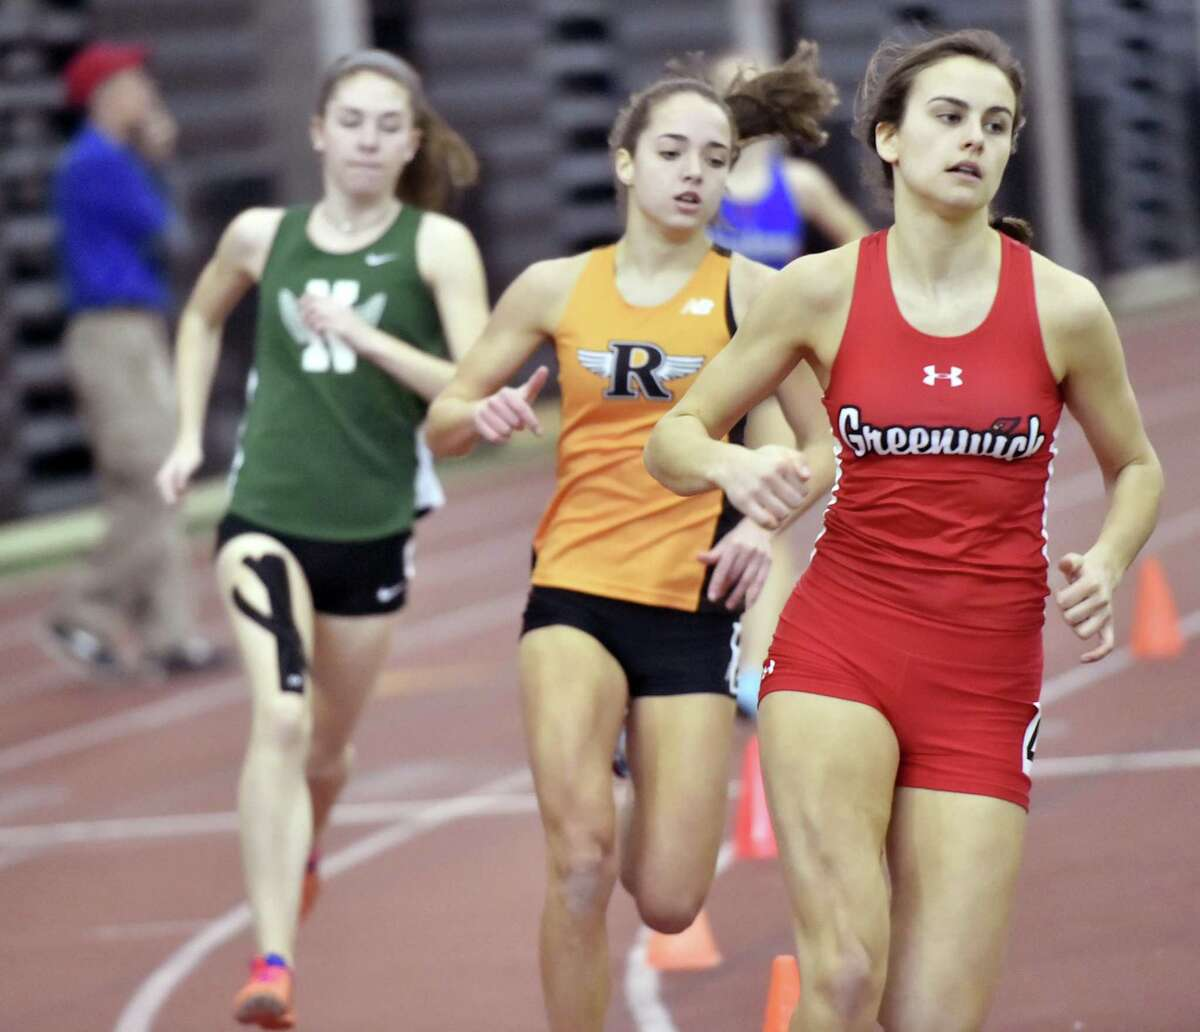 New Haven, Connecticut - Saturday, February 10, 2018: Genevieve DeWinter of Greenwich H.S. runs to a first place finish in the girls 600 Meter Race, right, as Emma Langis of Ridgefield H.S., center finishes second followed in third by Laura Turner of Norwalk H.S., left, during the 2018 State Class LL Girls and Boys Indoor Track and Field Championship at the Floyd Little Athletic Center in New Haven .